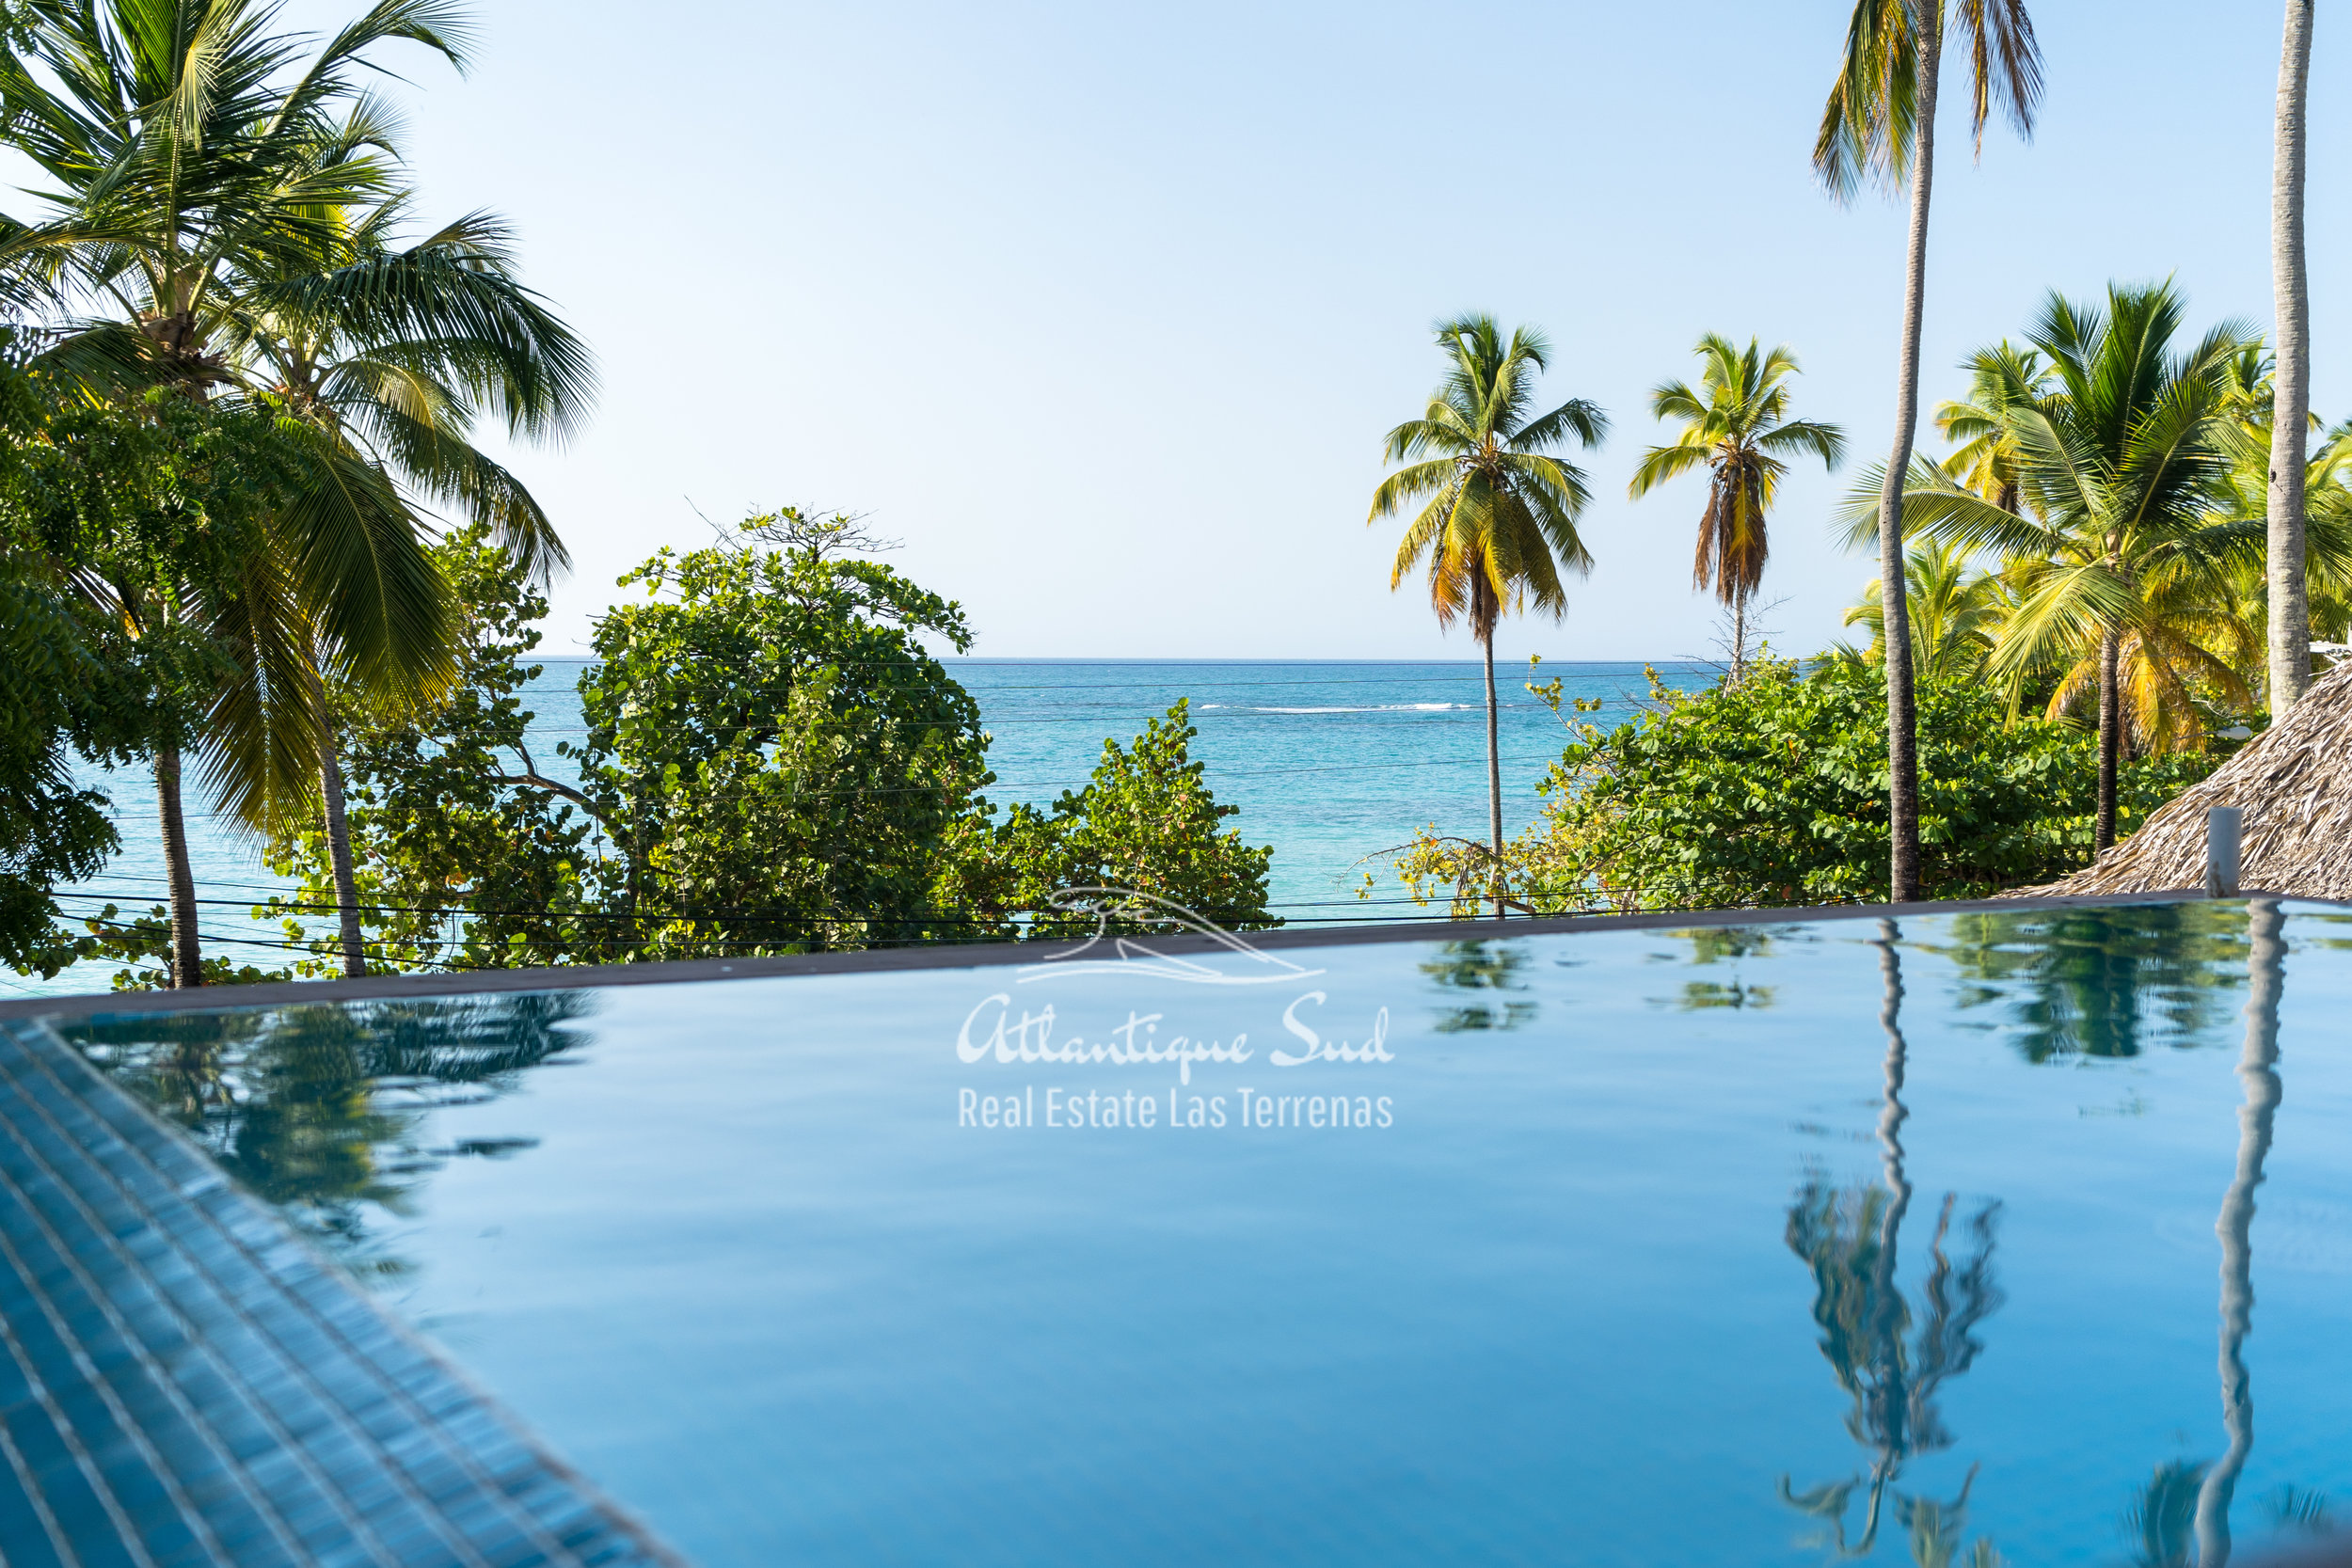 beachfront-hotel-las-terrenas-for-sale-partnership10.jpg